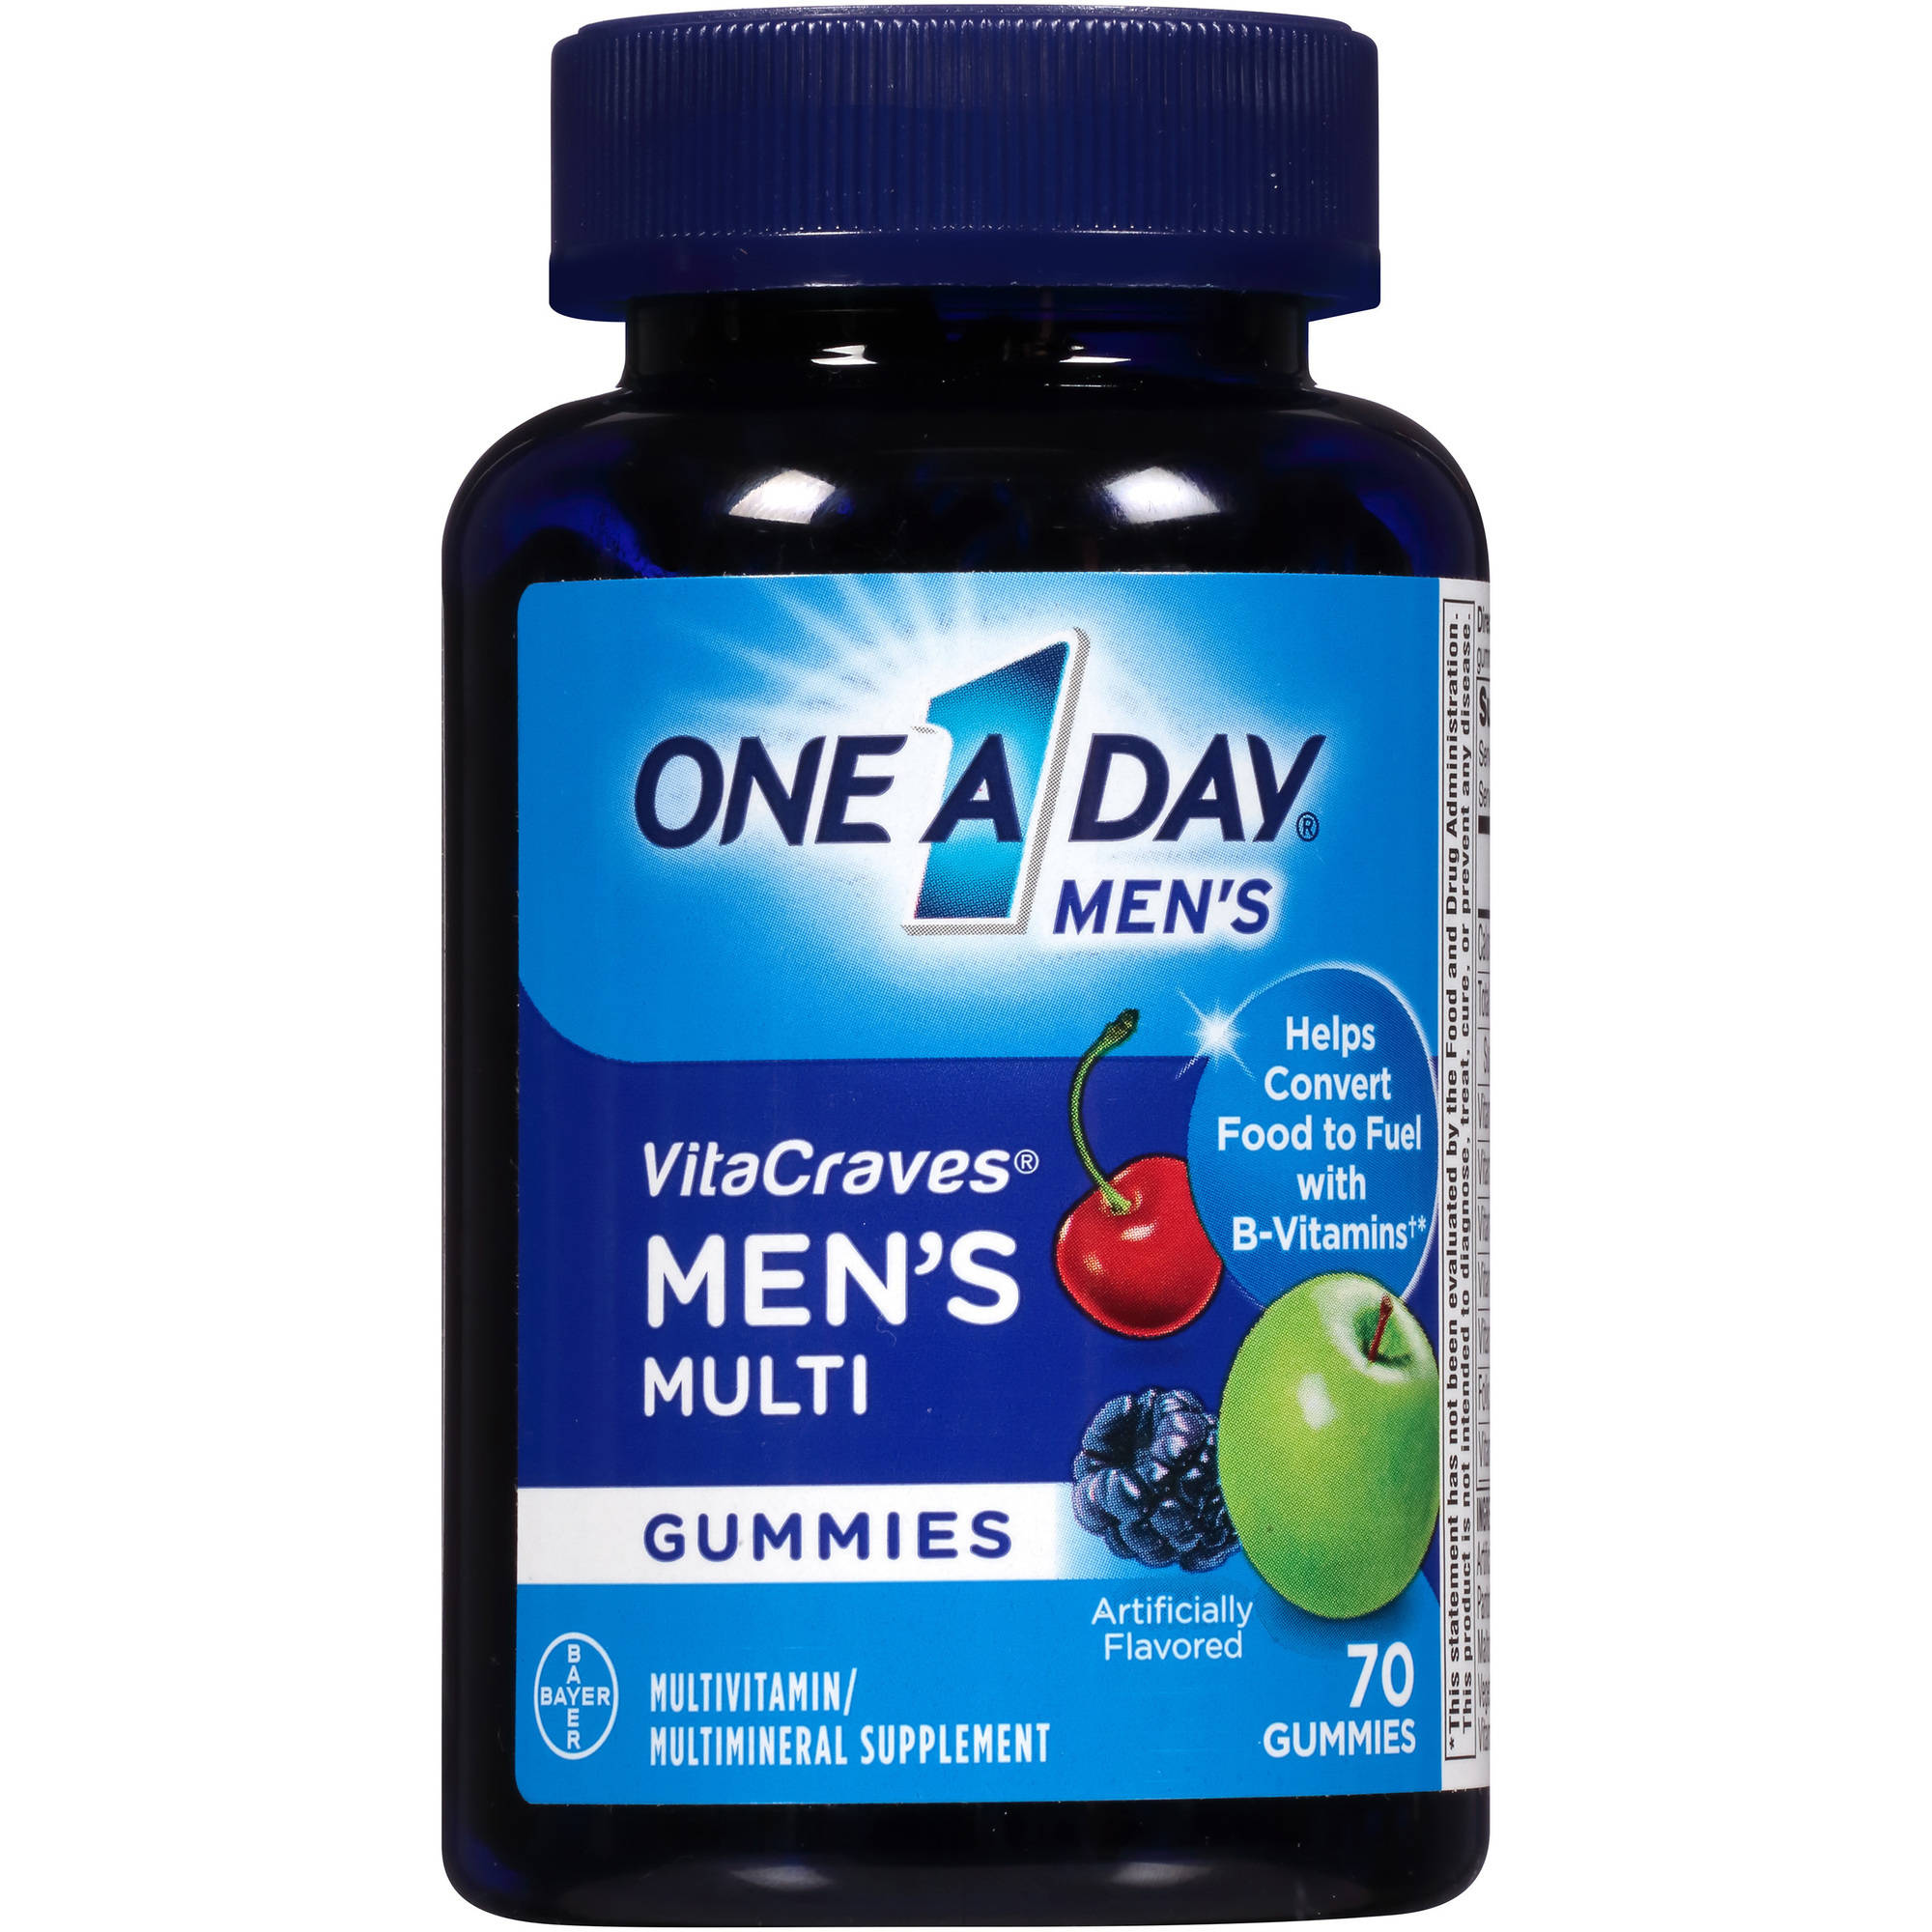 One a Day Men's VitaCraves Men's Gummies Multivitamin/Multimineral Supplement, 70 count